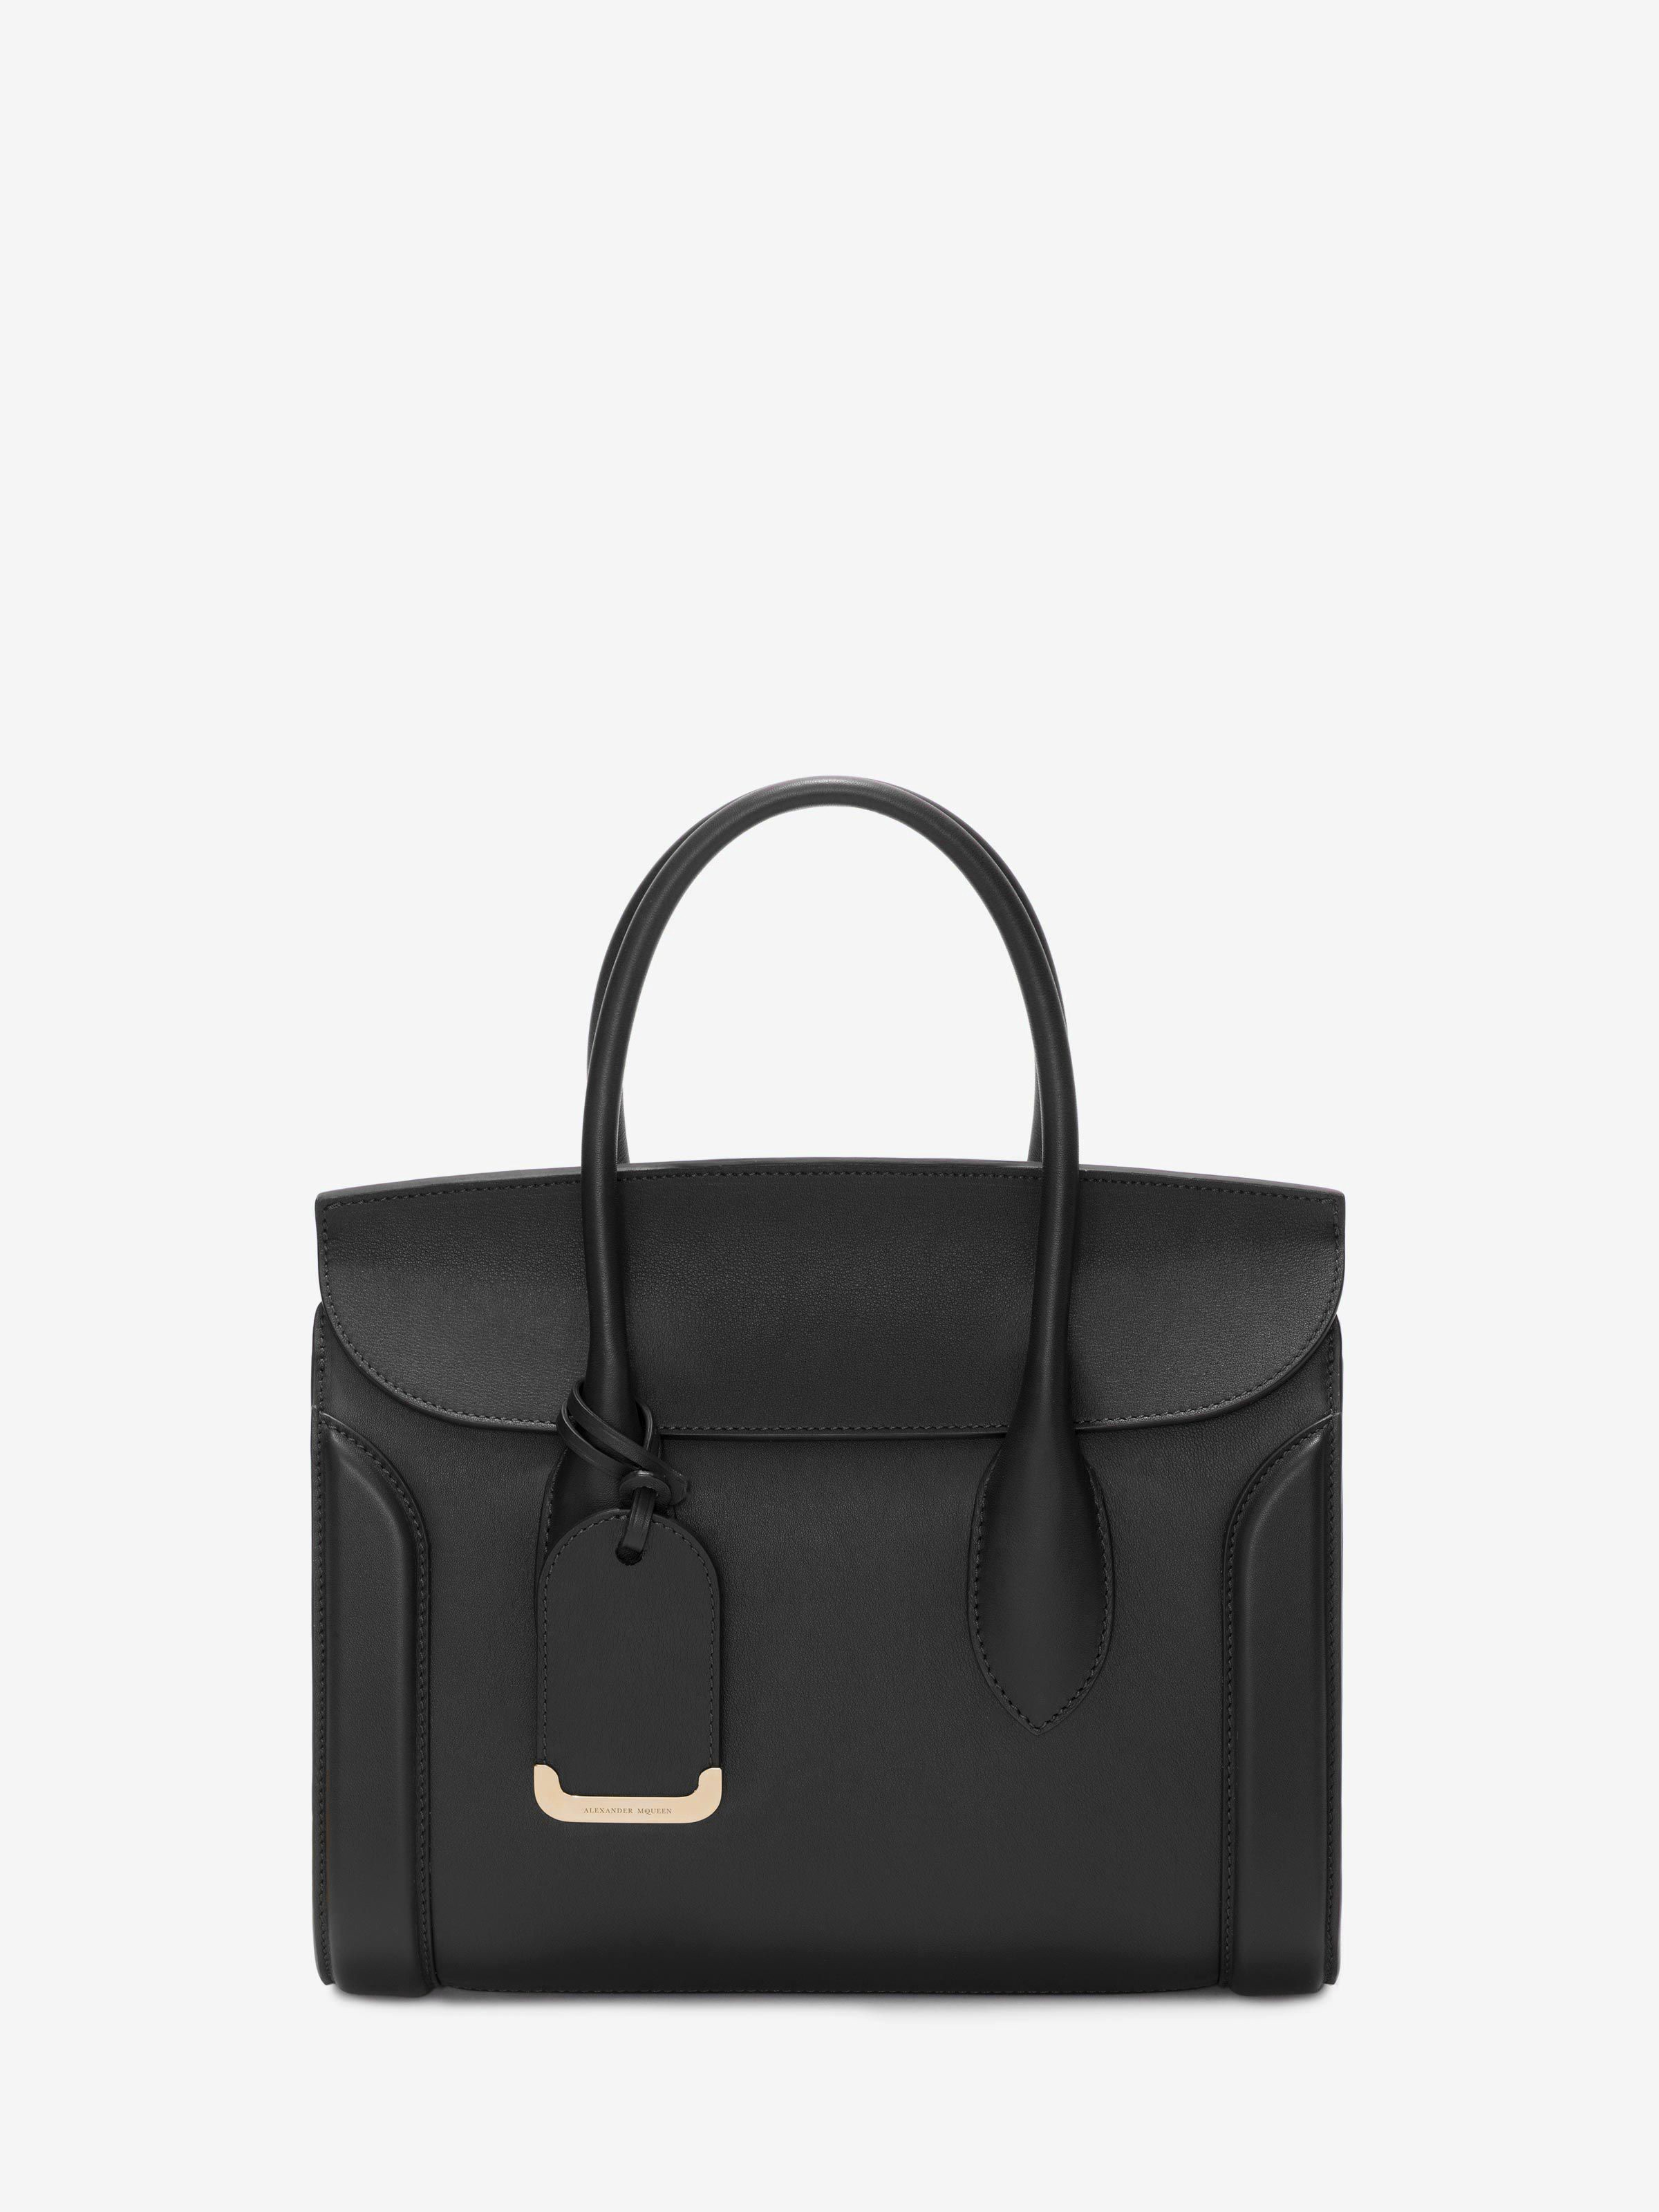 Tote Bag On Sale, Black, Leather, 2017, one size Alexander McQueen